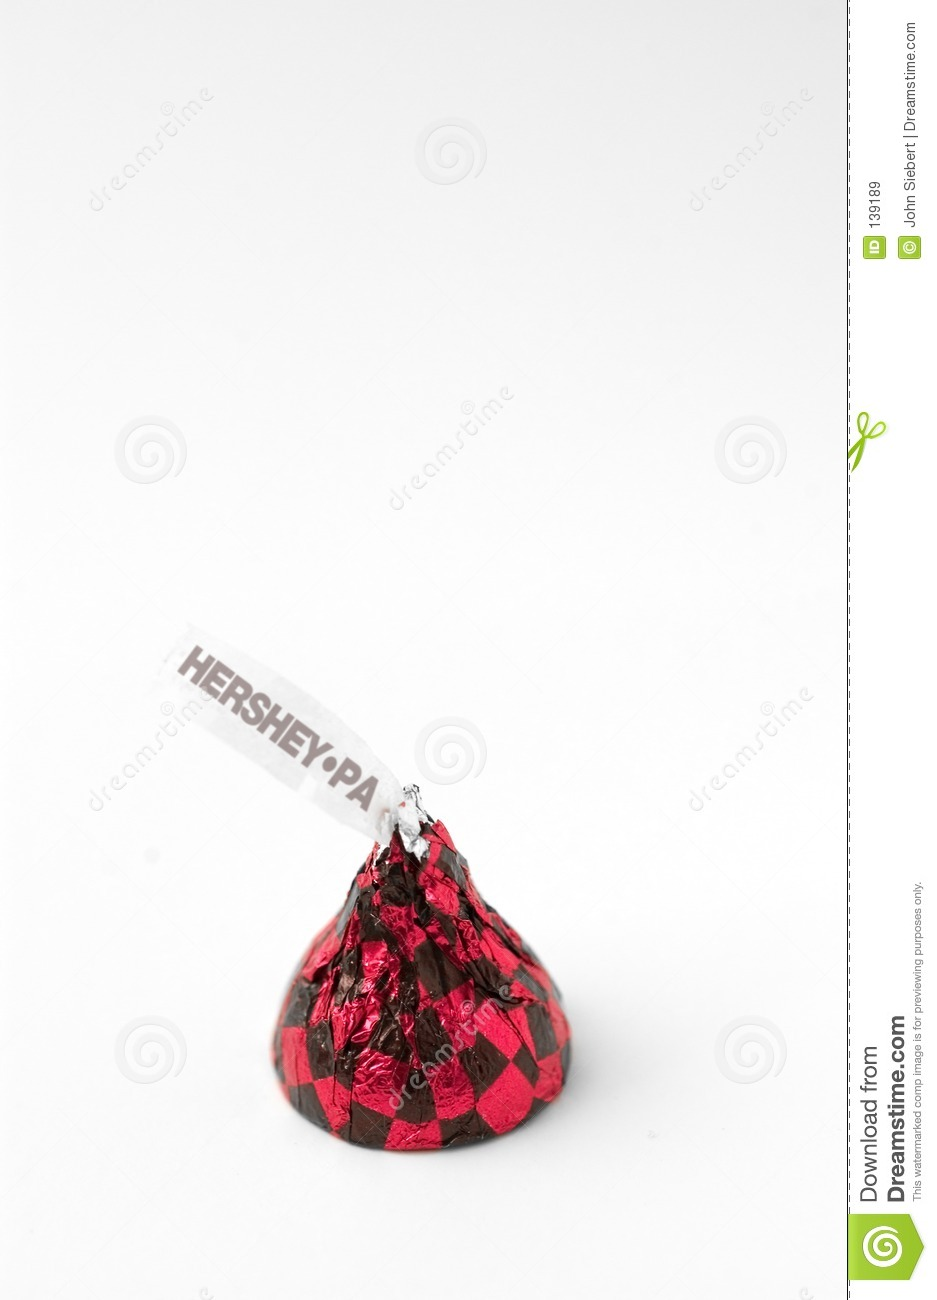 hershey divorced singles personals Plentyoffish dating forums are a place to meet singles and get dating advice or mr hershey kiss: joined: 2/9 if divorced, always divorced (while.